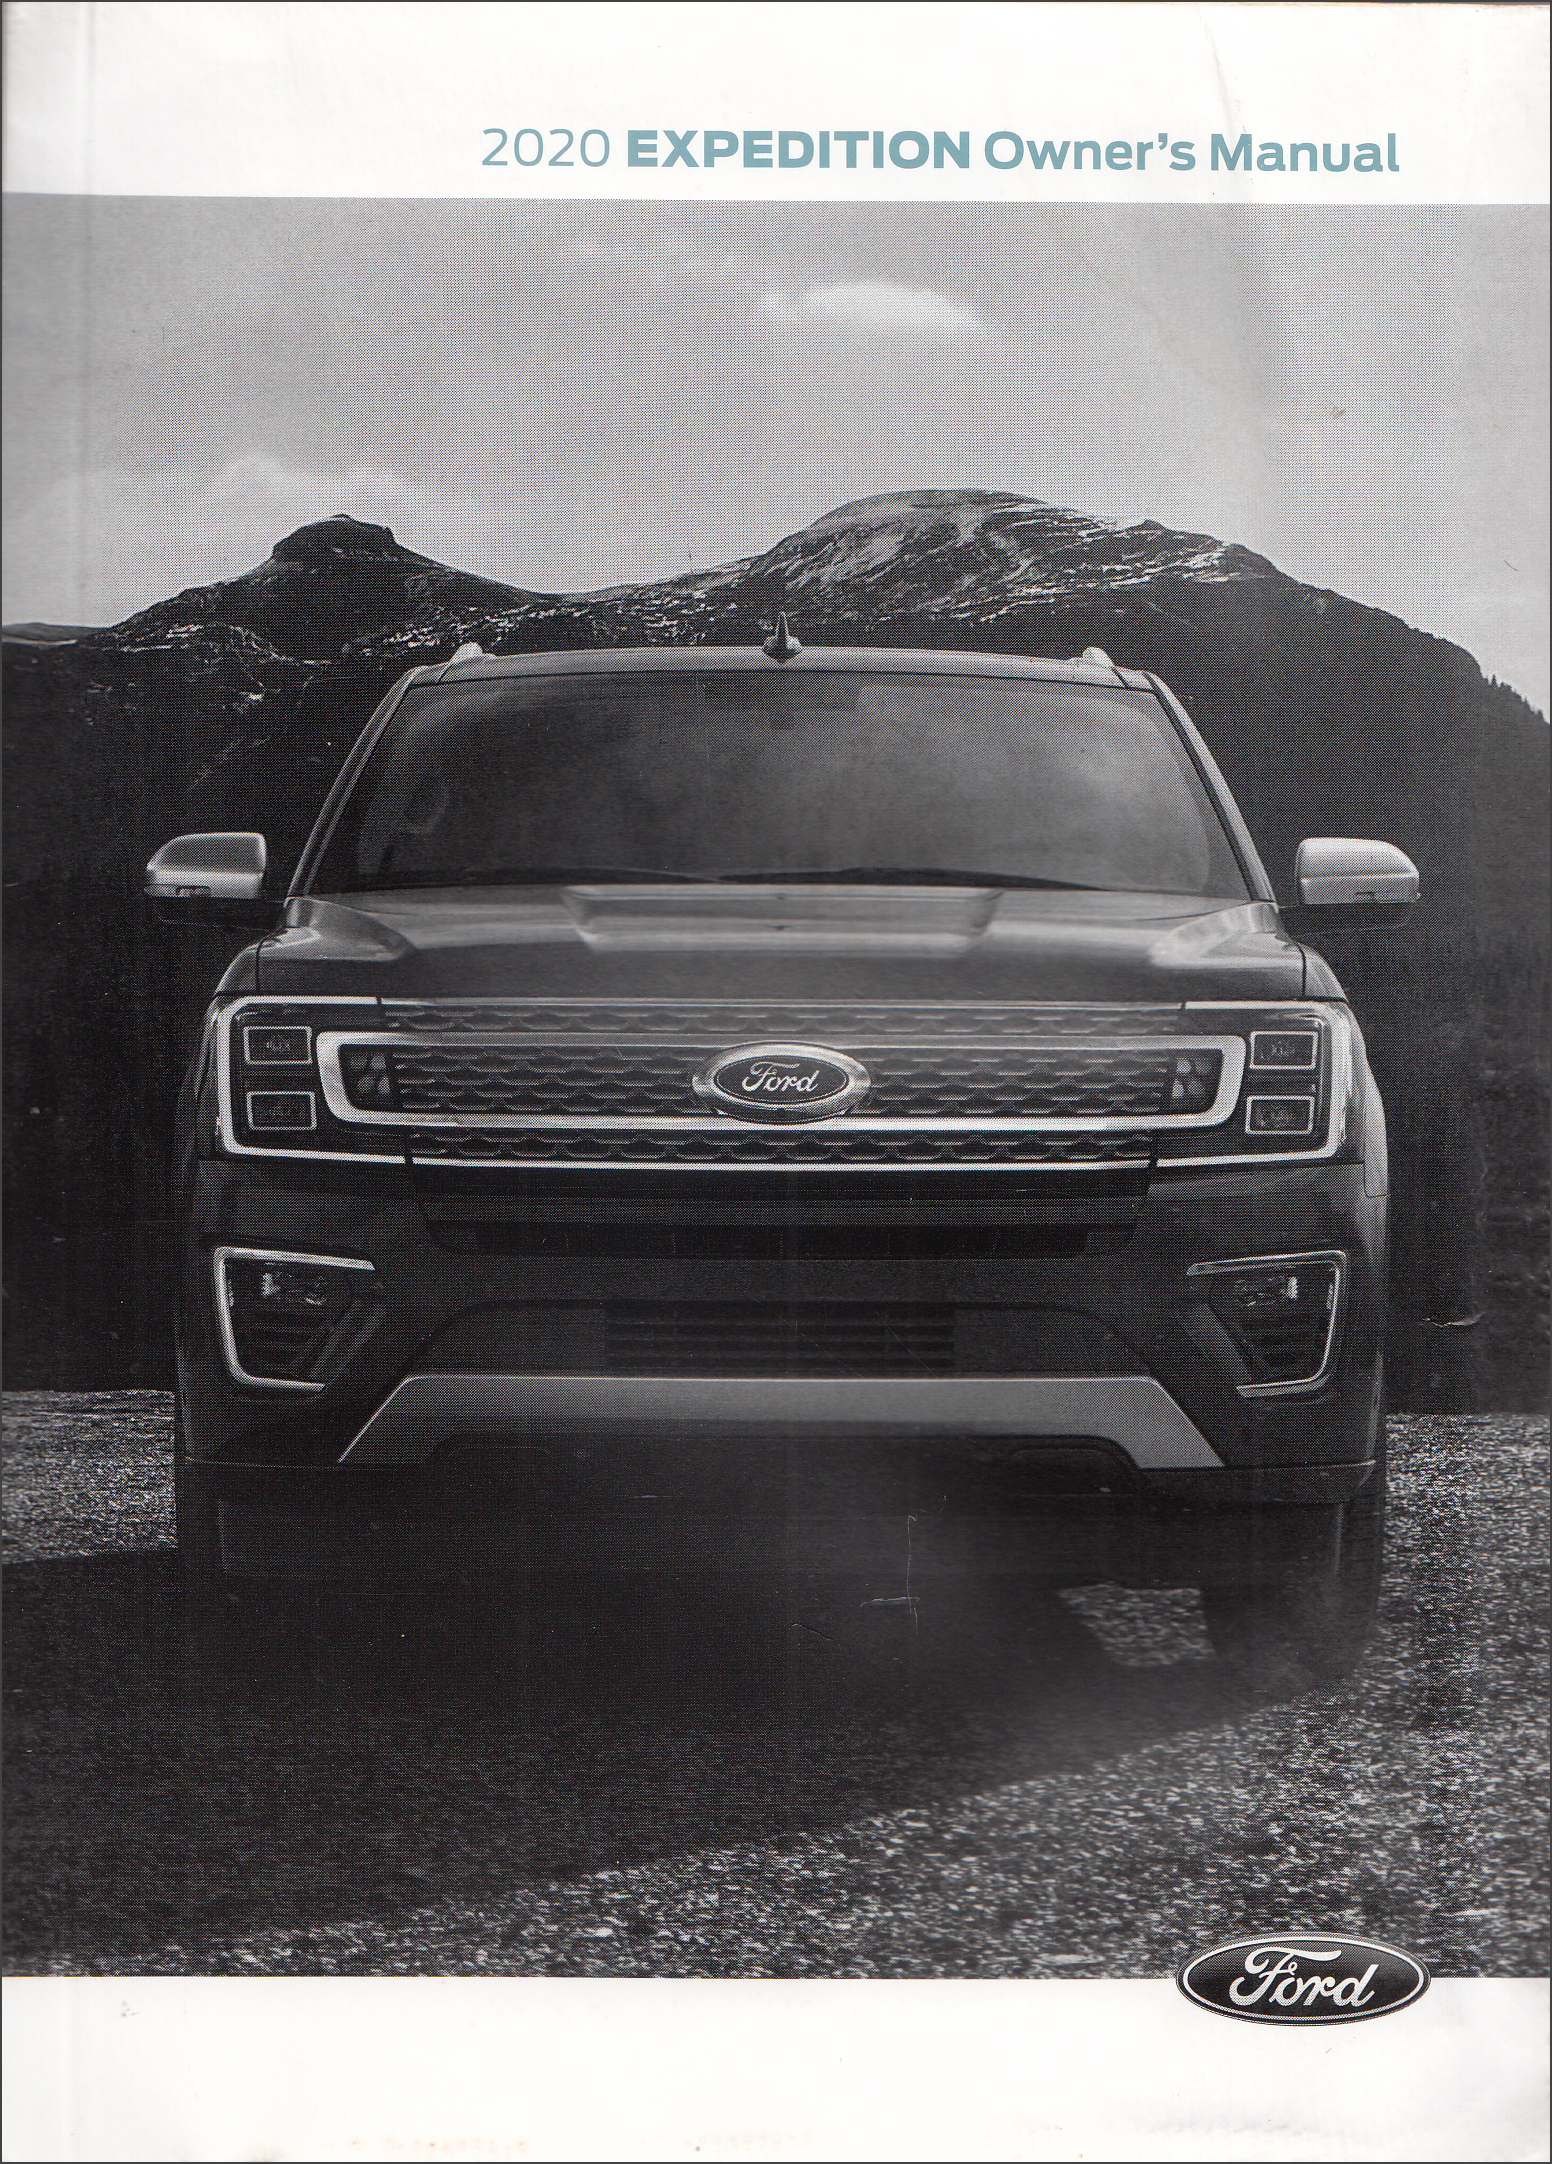 2020 Ford Expedition Owner's Manual Original